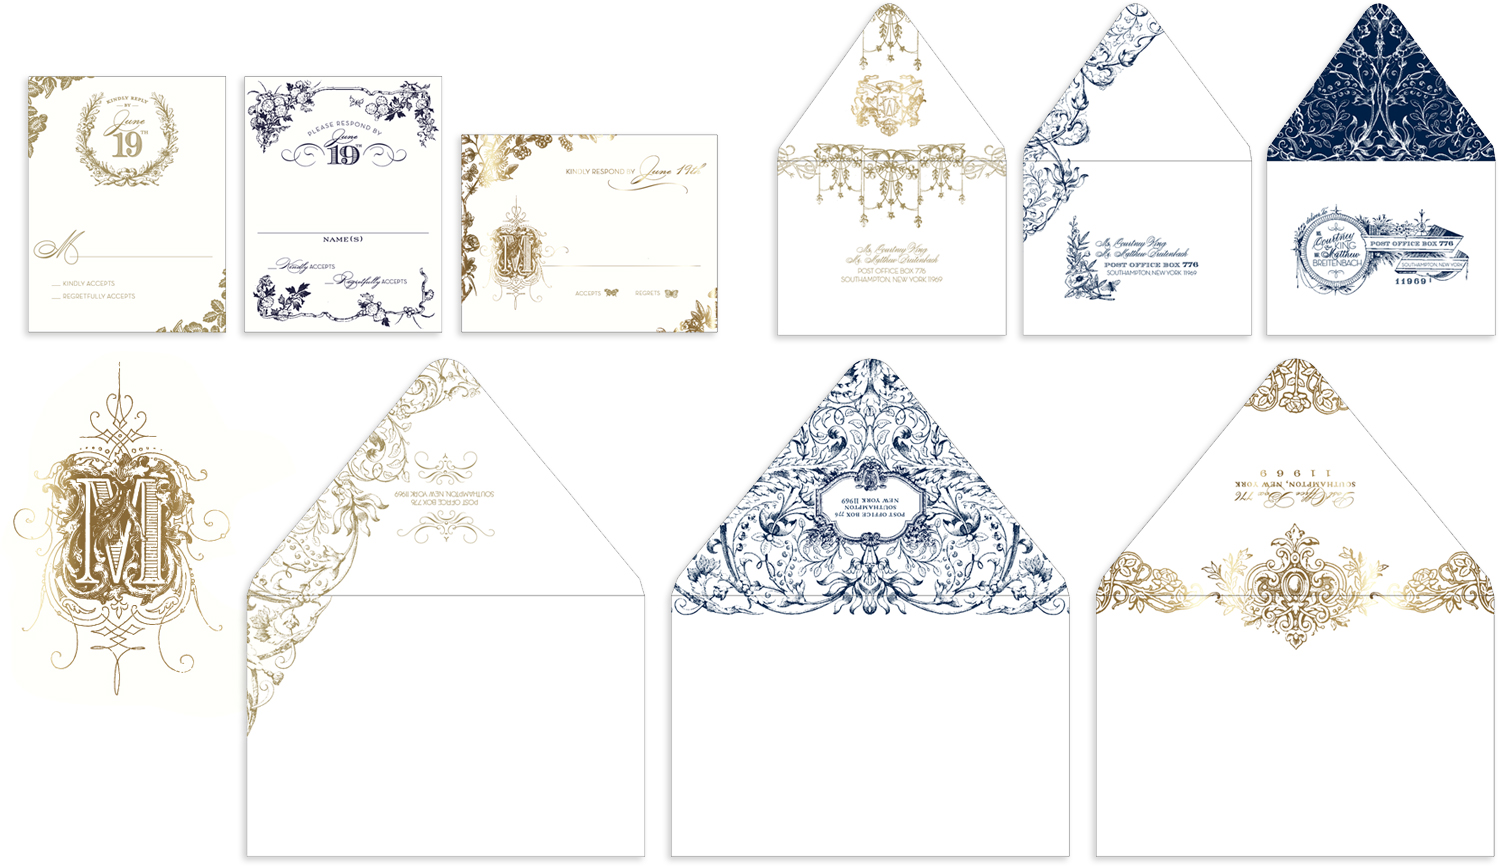 Ornate alternate designs for outer and reply envelopes